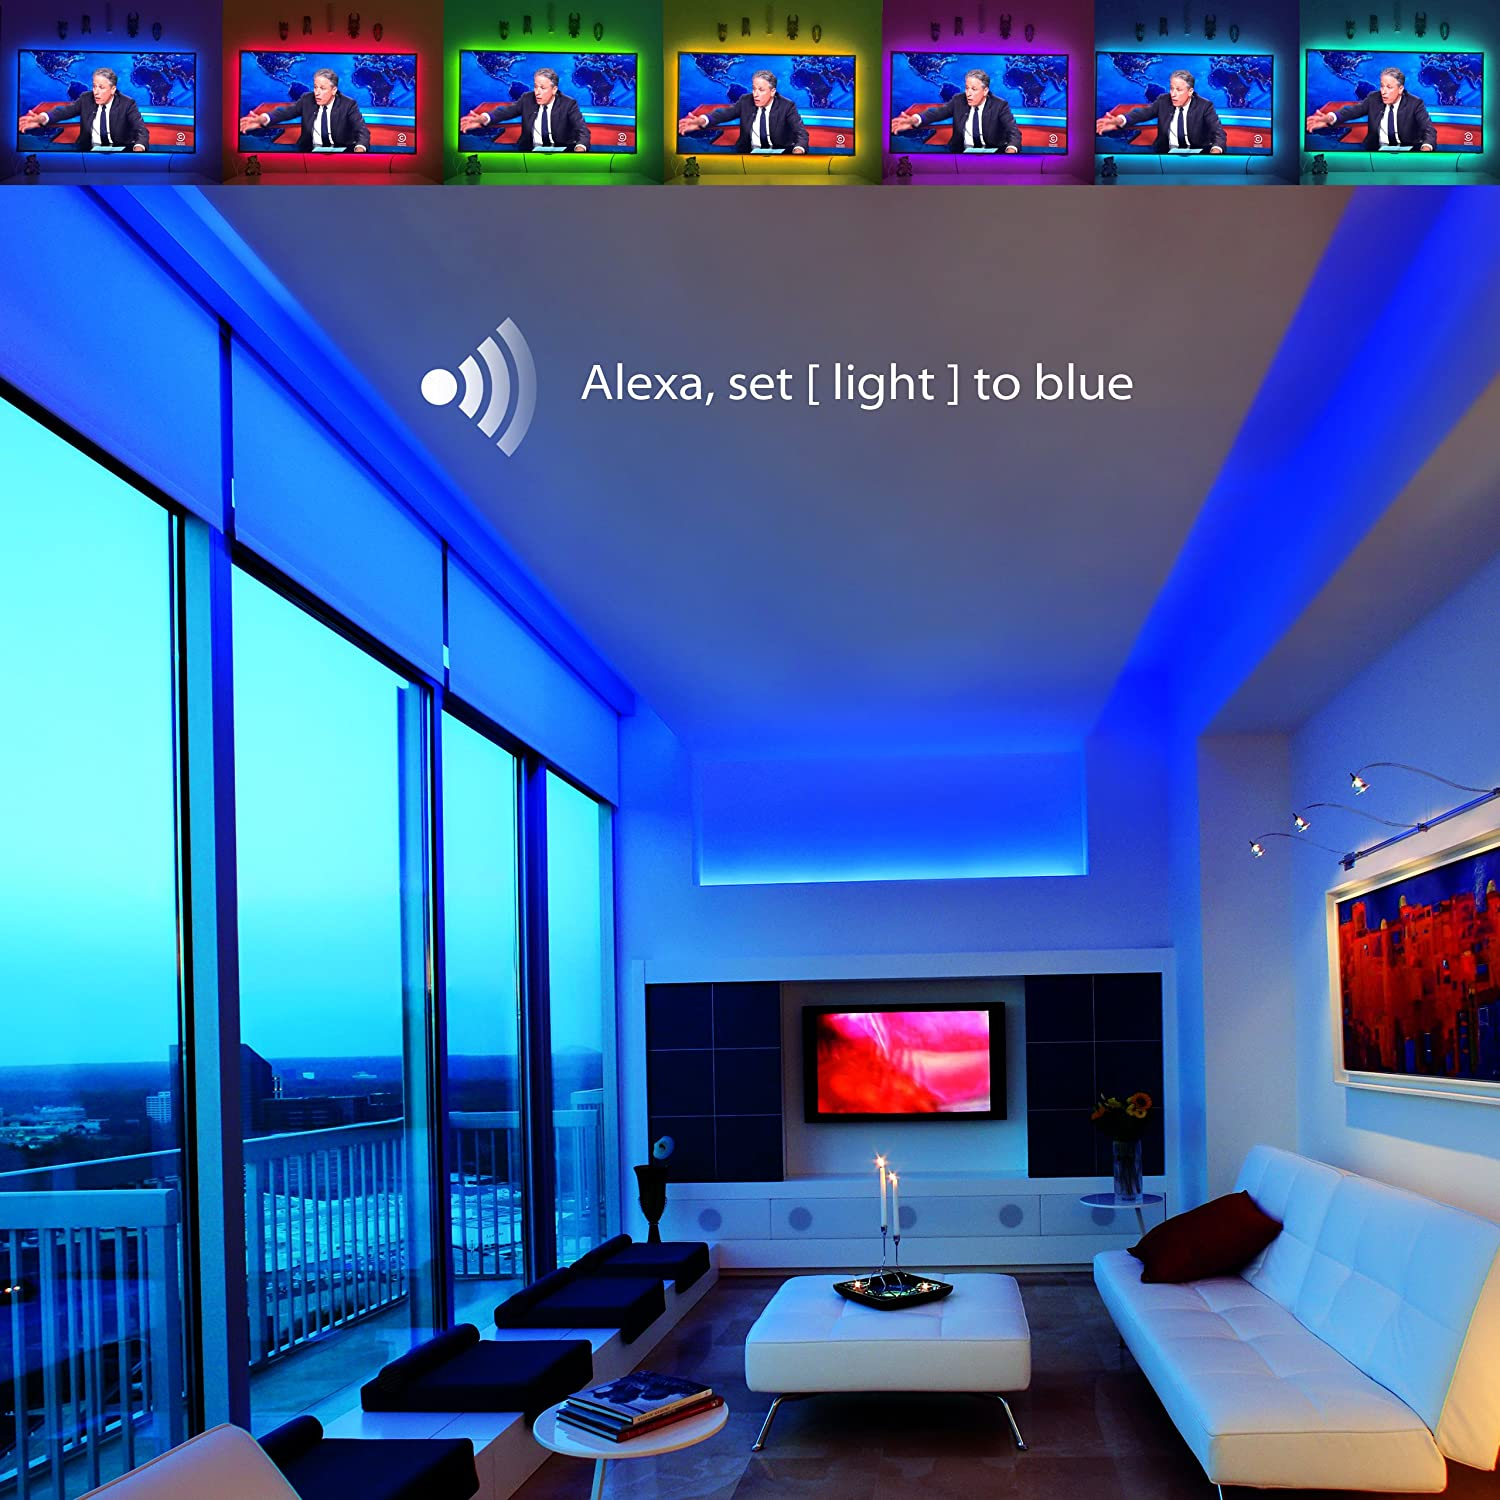 Led Strip Lights Compatible With Alexa Maxonar Wifi Compare Automatic Room Light Controller Source Kit Rgb Multicolor Waterproof Ip65 Wireless Smart Phone